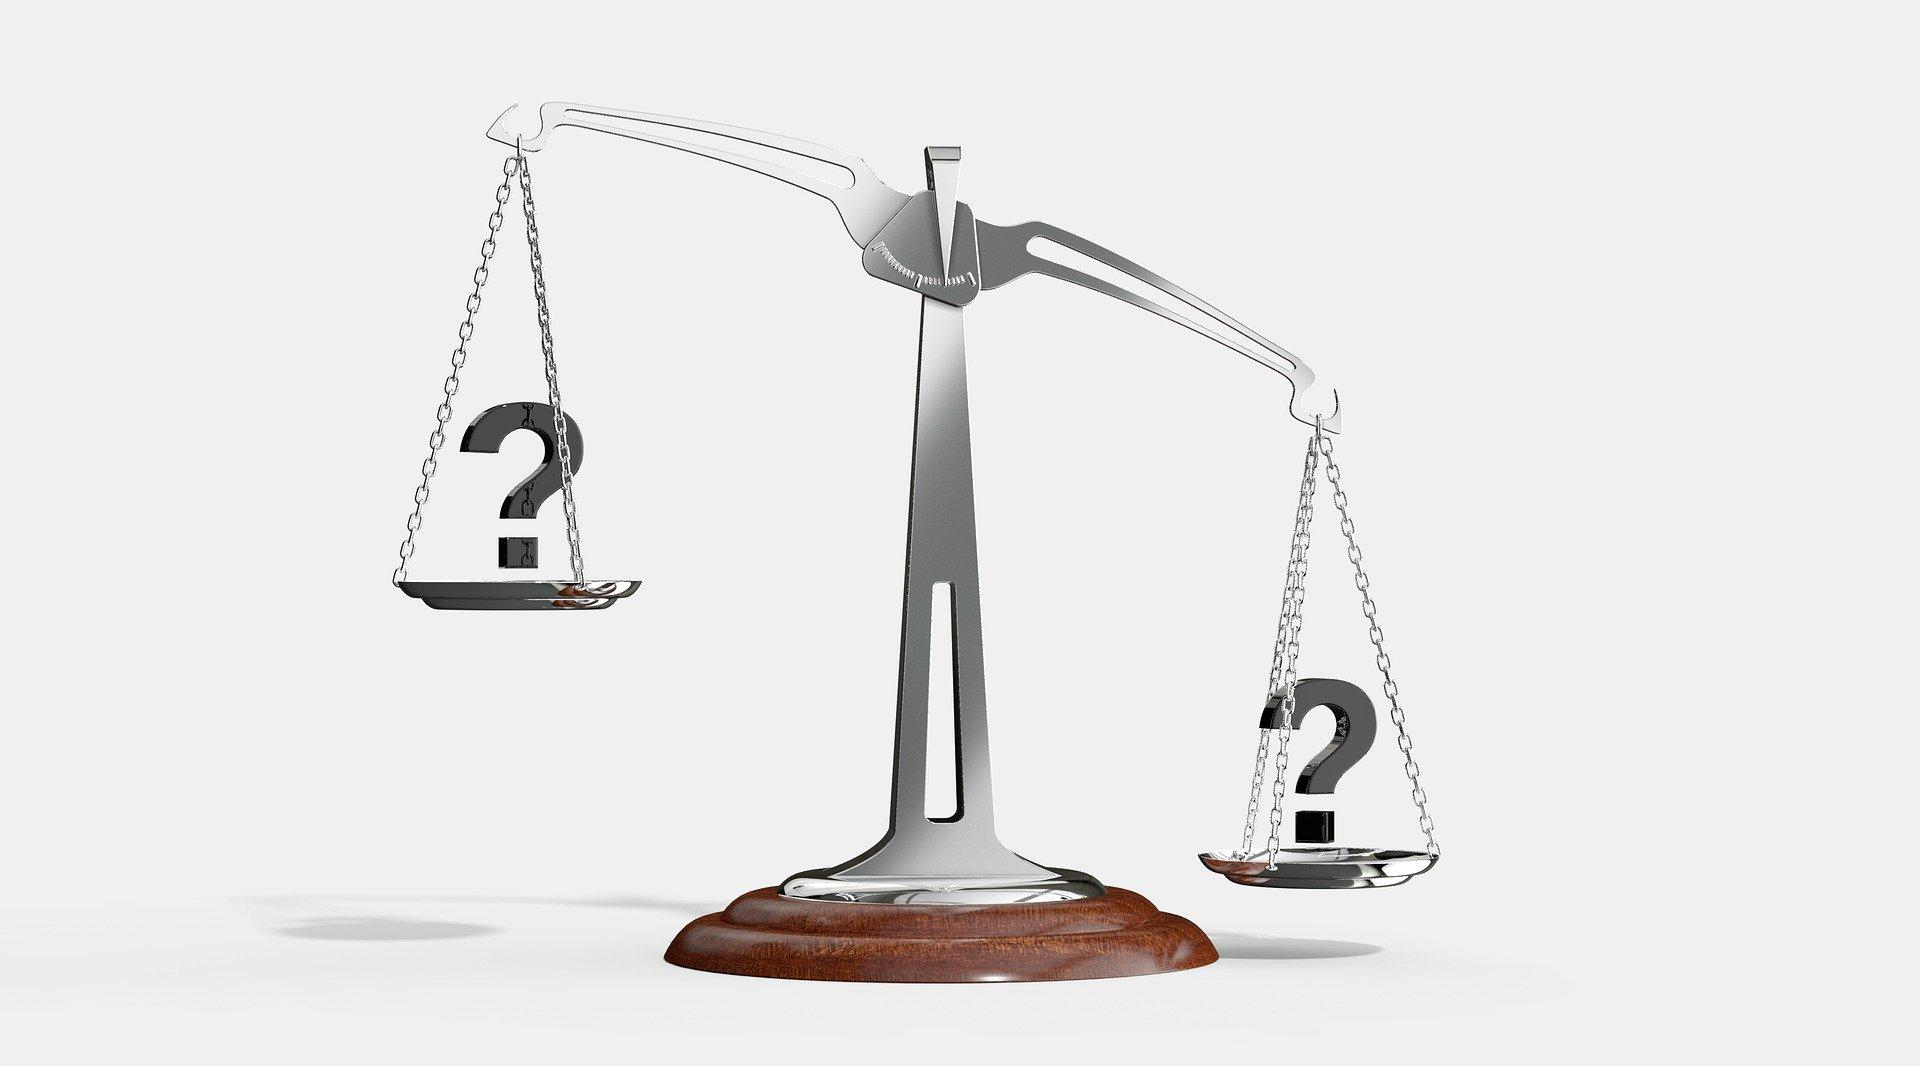 Are Statutory Demands The Same as County Court Judgments